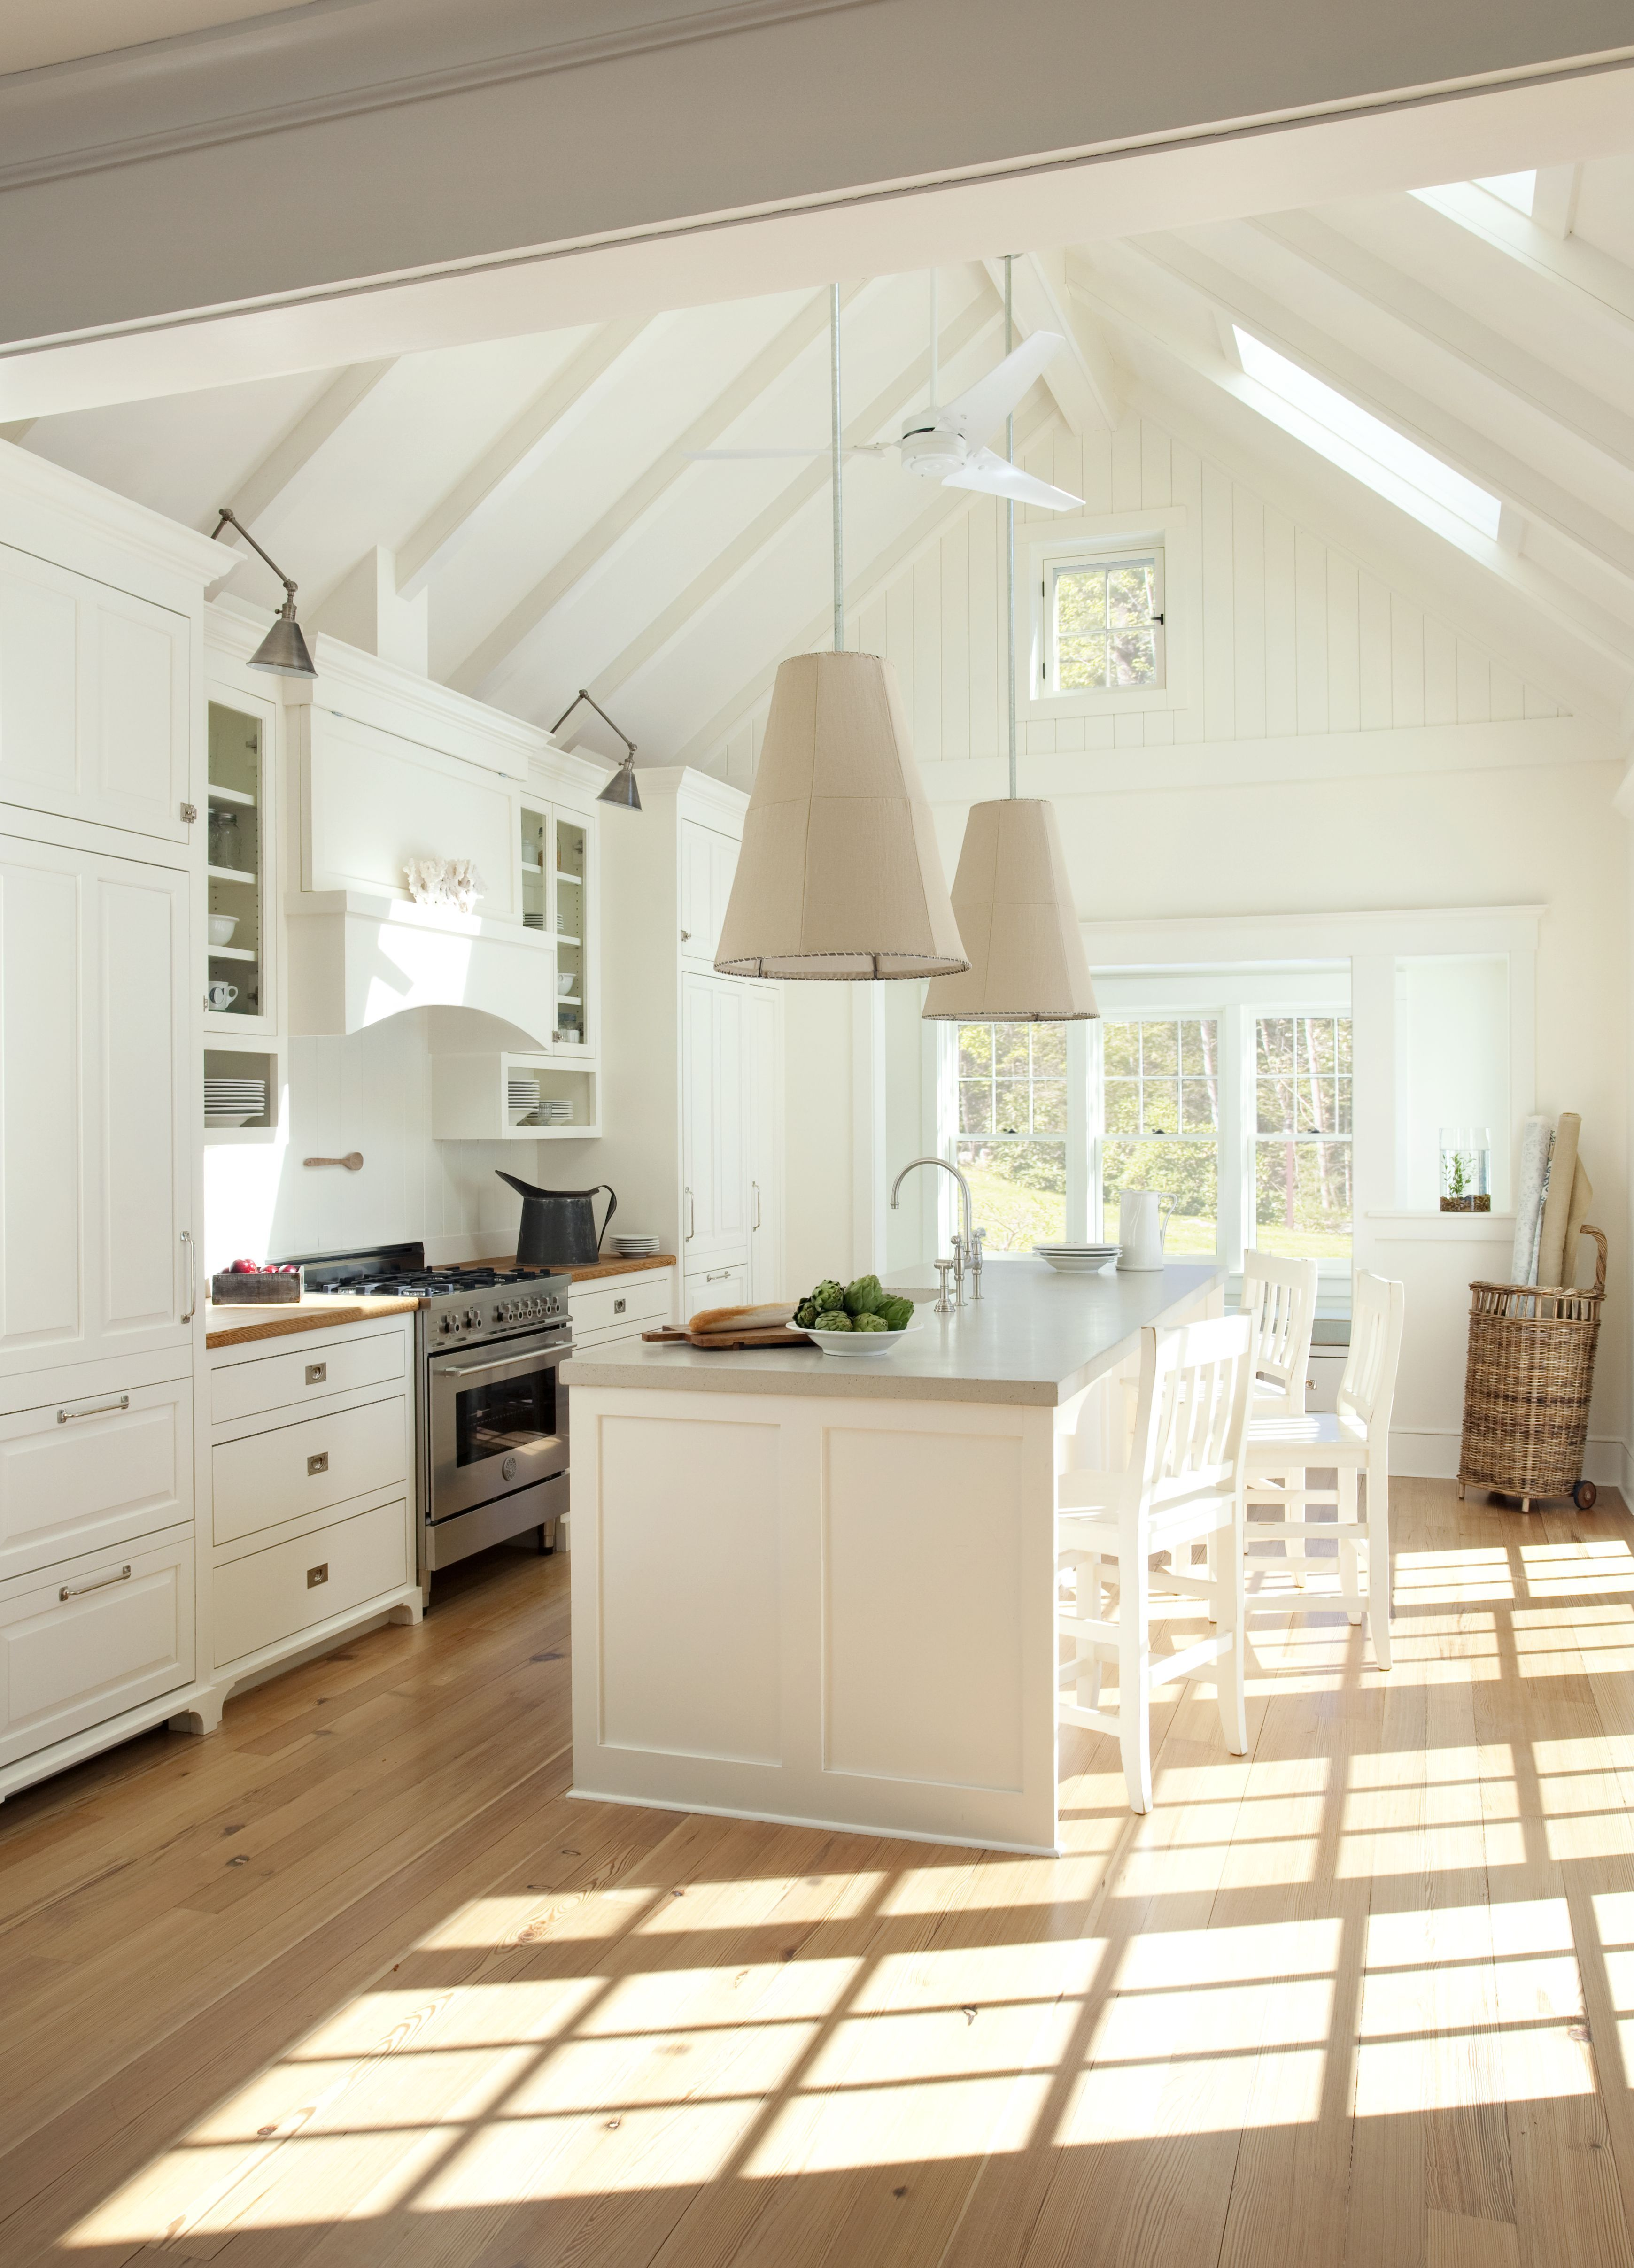 oversized pendant lighting. Oversized Pendant Lighting. Lights Create A Necessary Focal Point In This Space While Lighting L